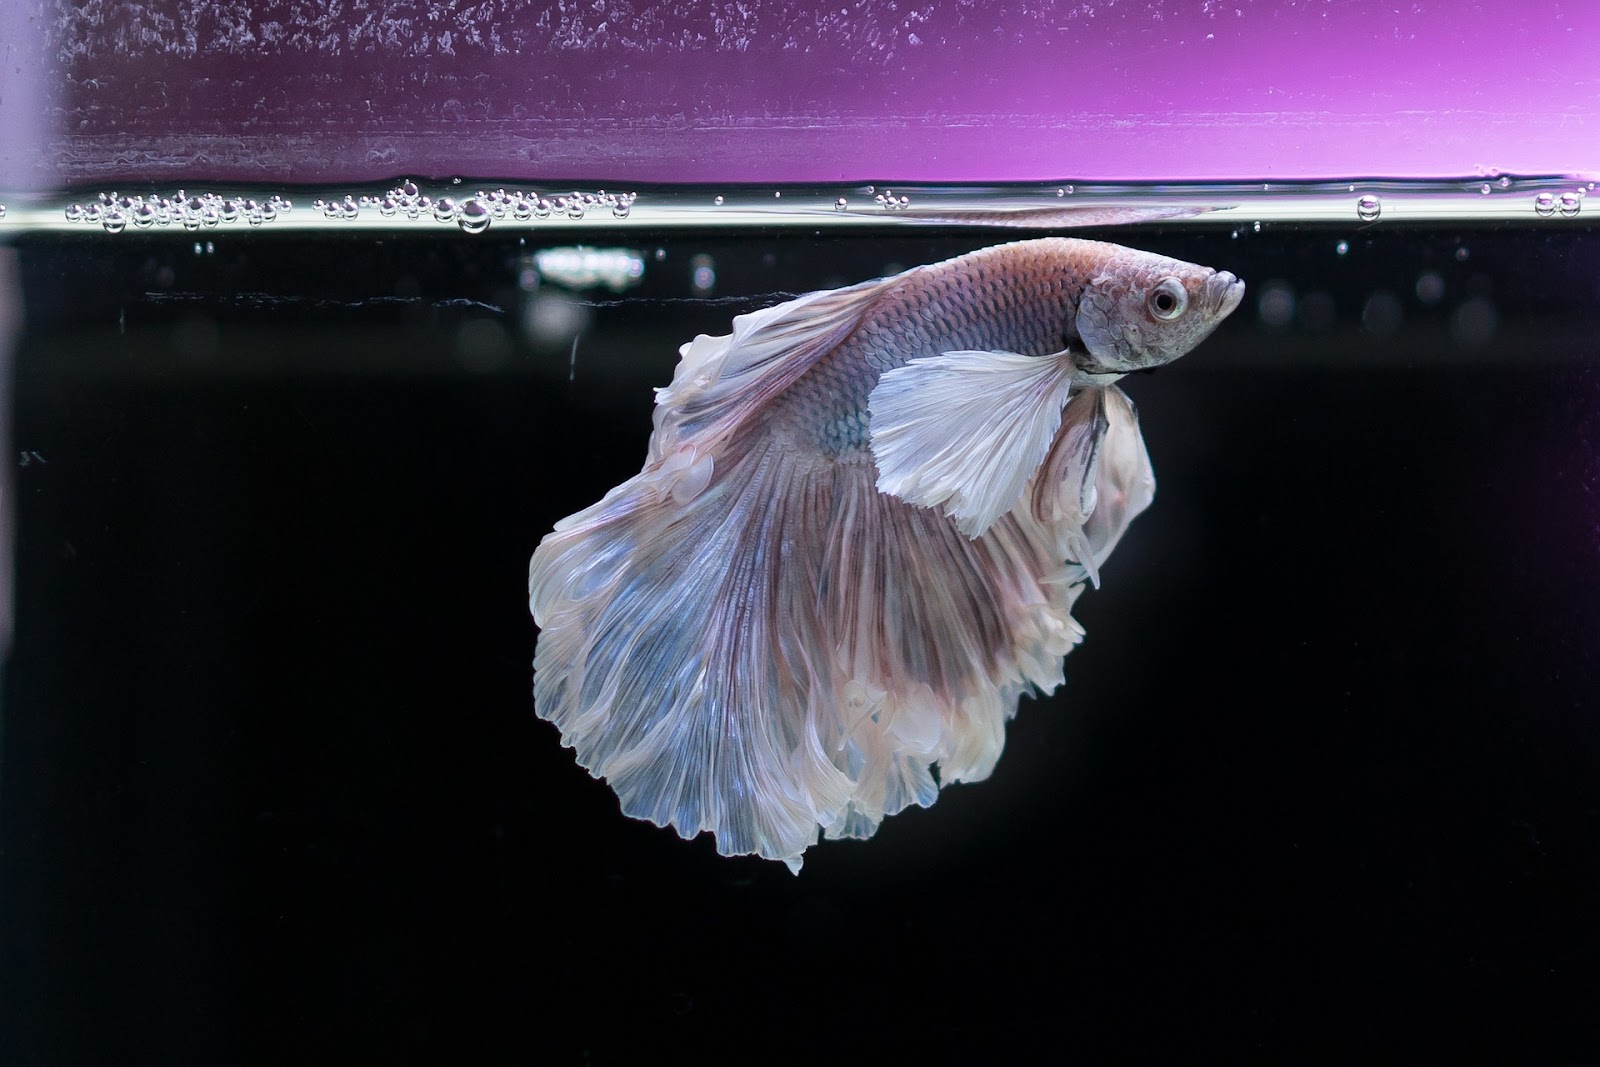 Fish with flowing fins